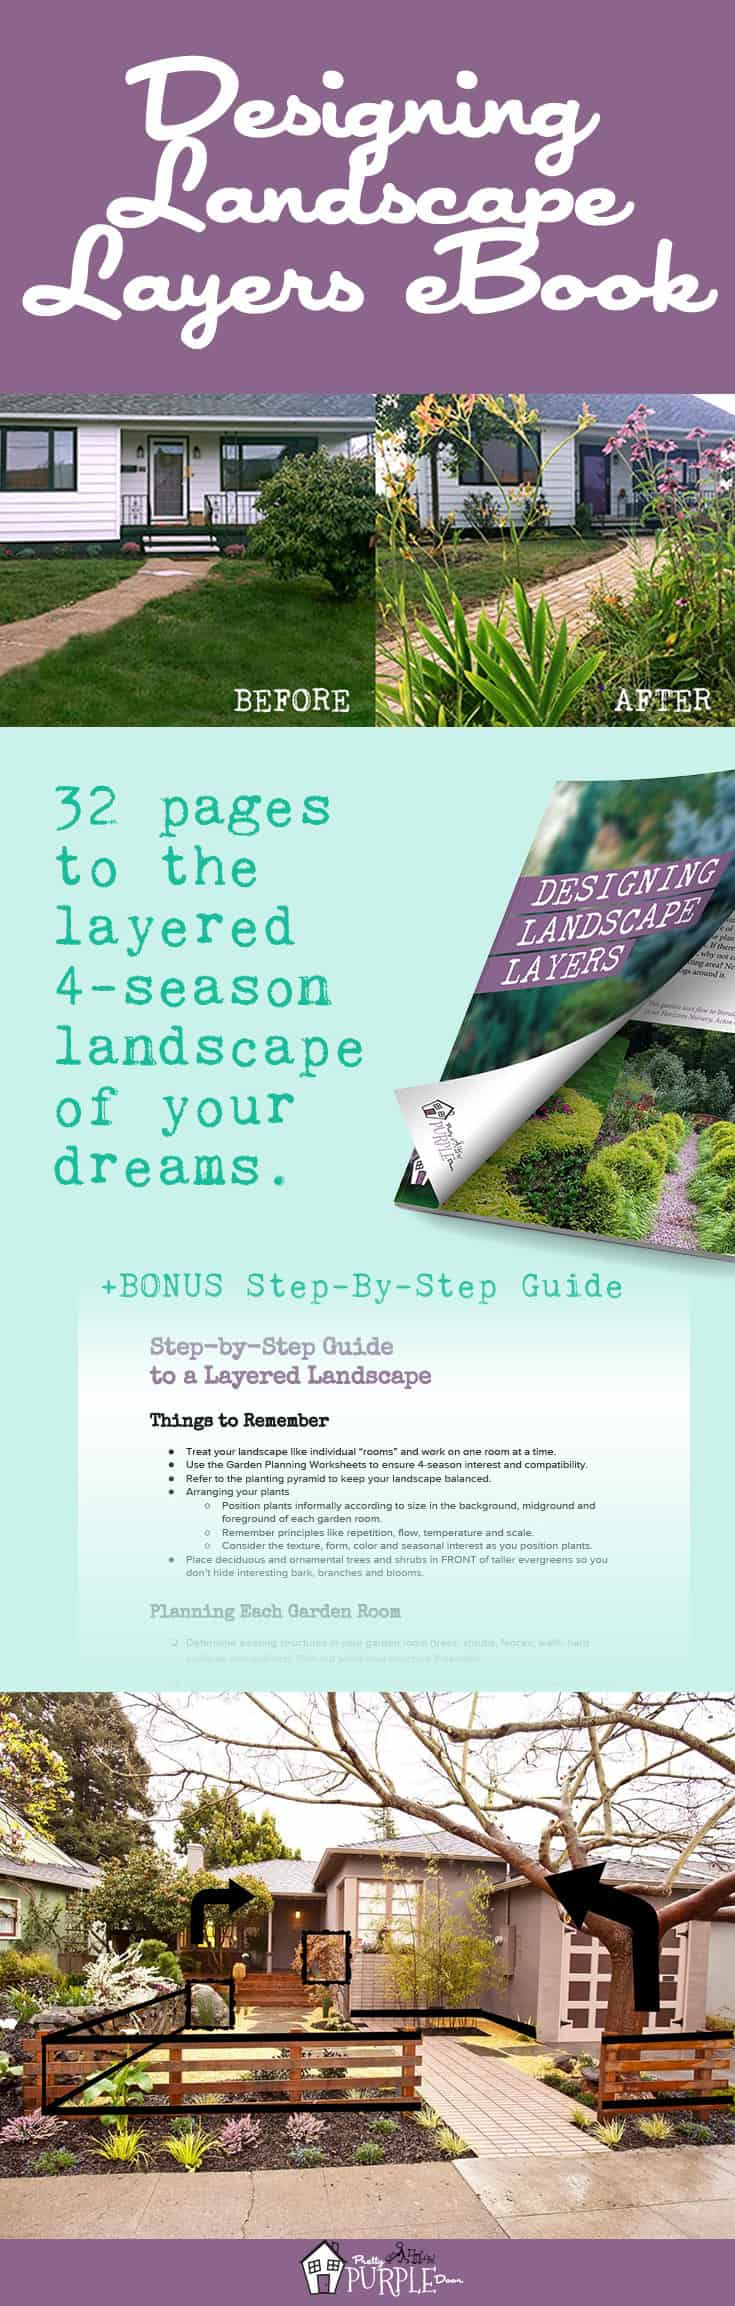 Designing Landscape Layers EBook Pinterest Image